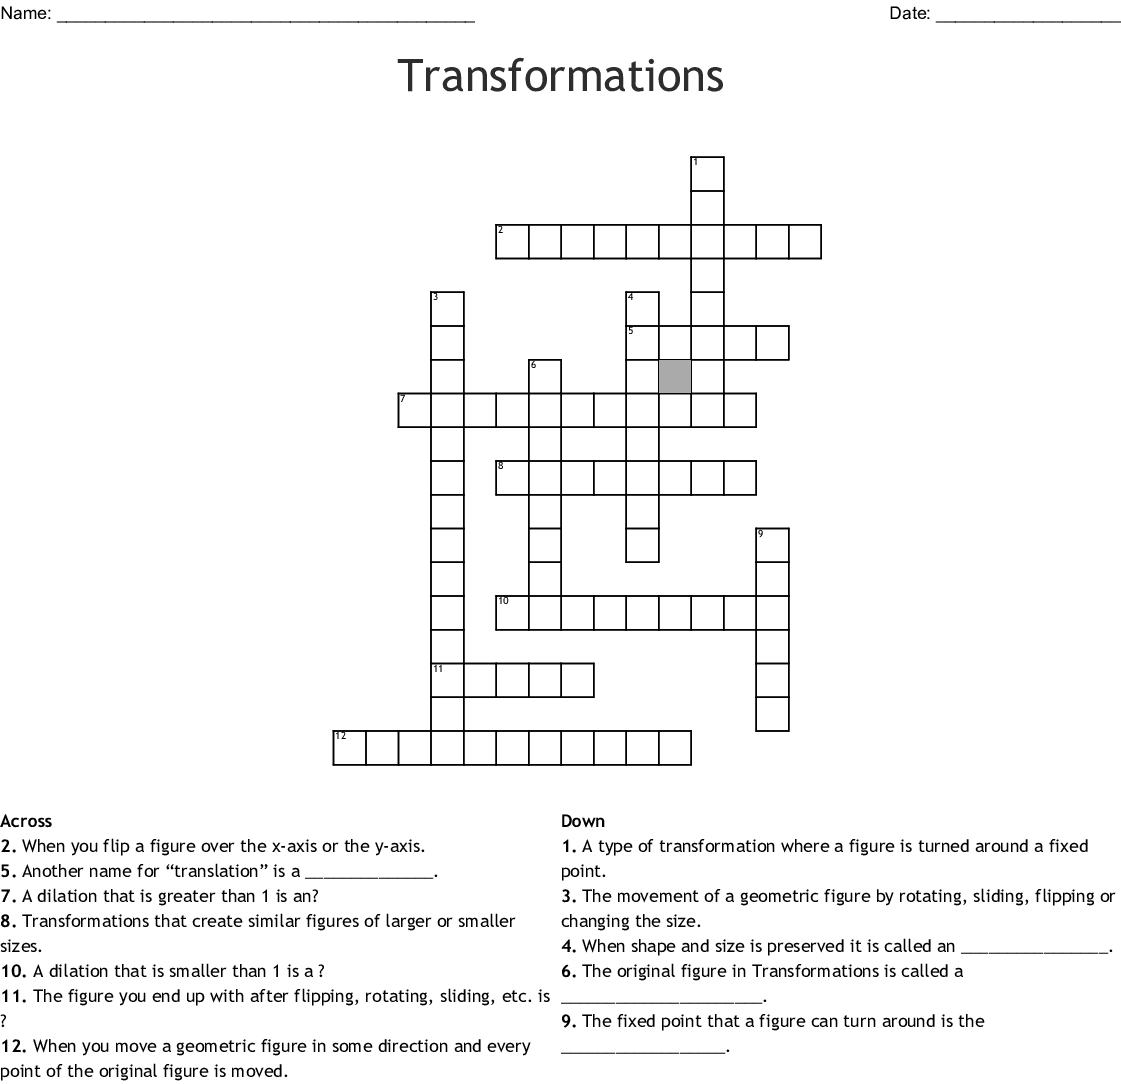 Transformations Crossword